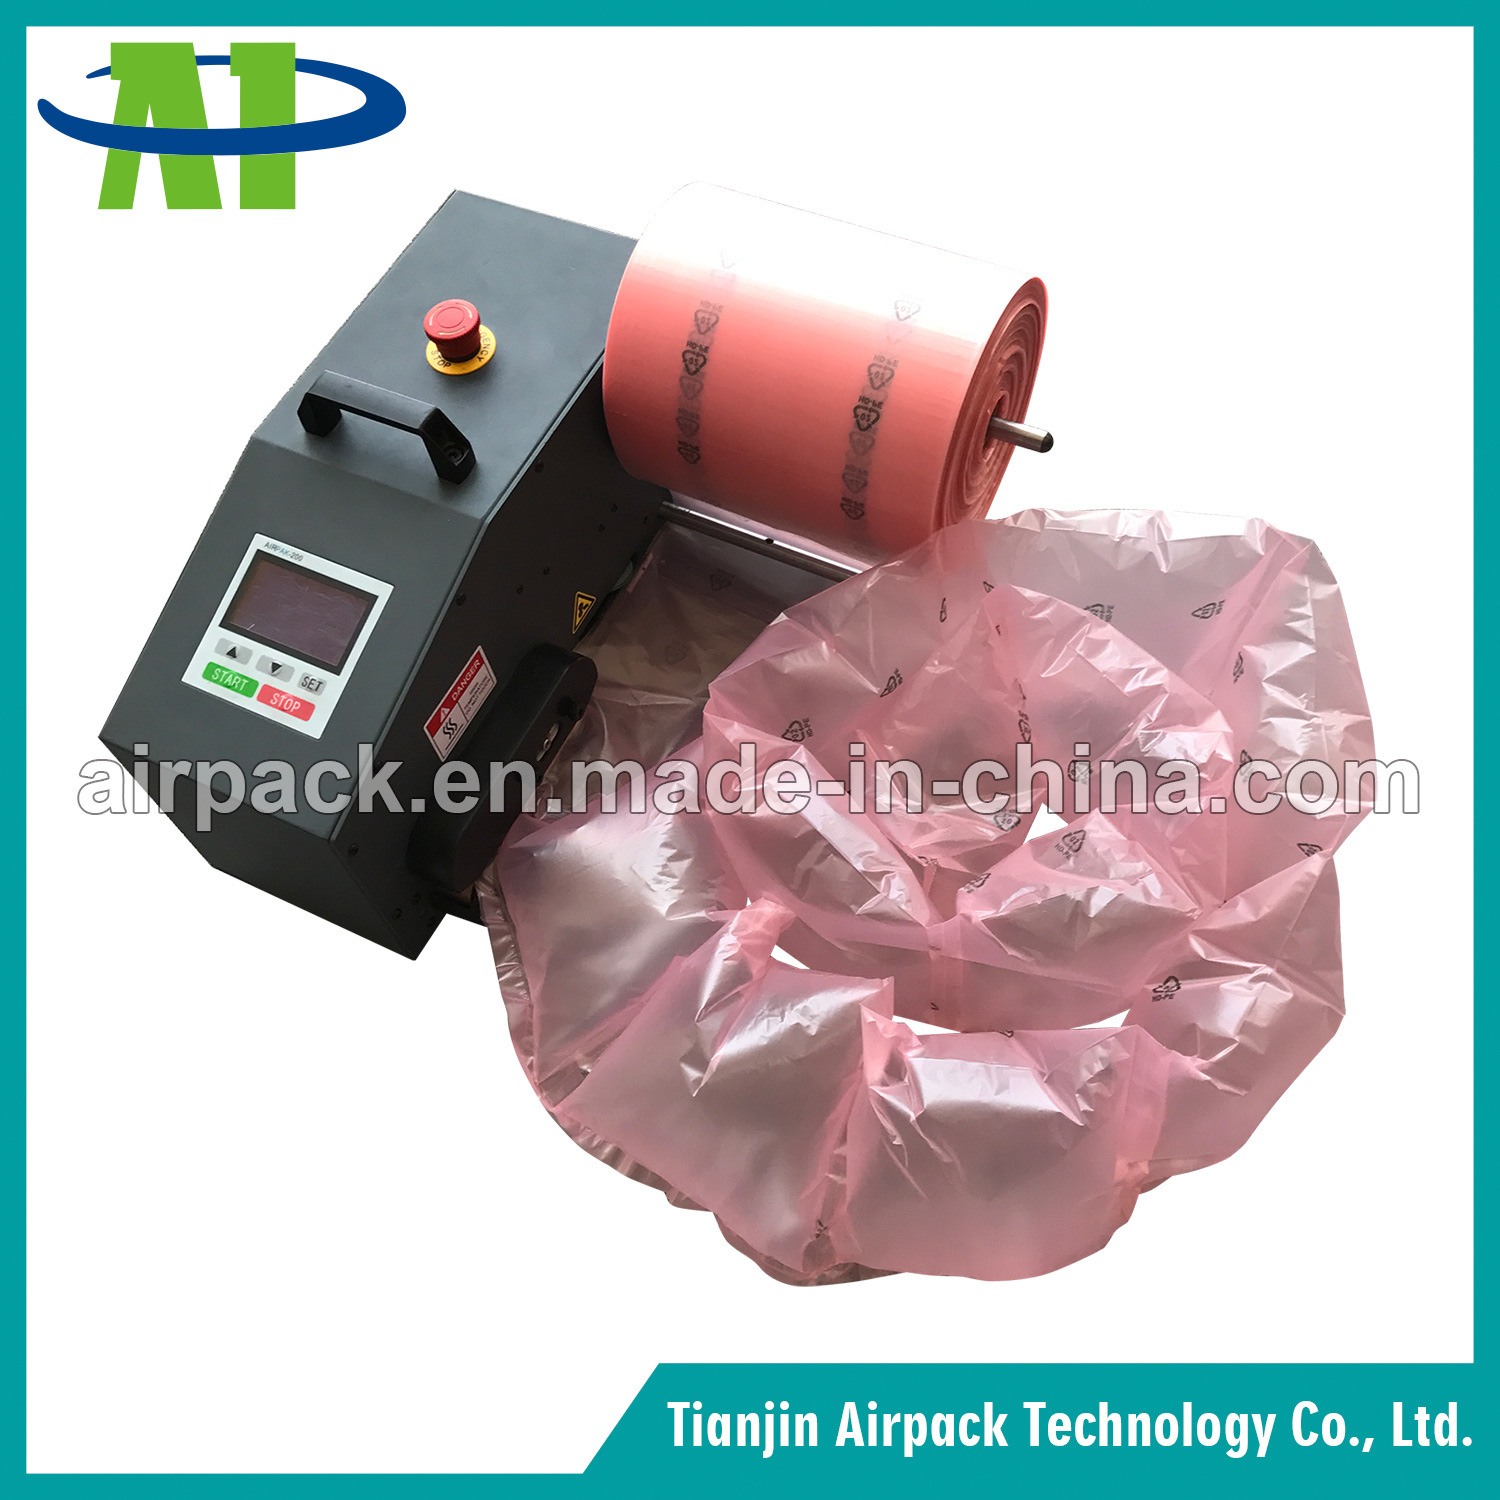 Protective Packaging Air Cushion Machine for Air Bag and Air Bubble